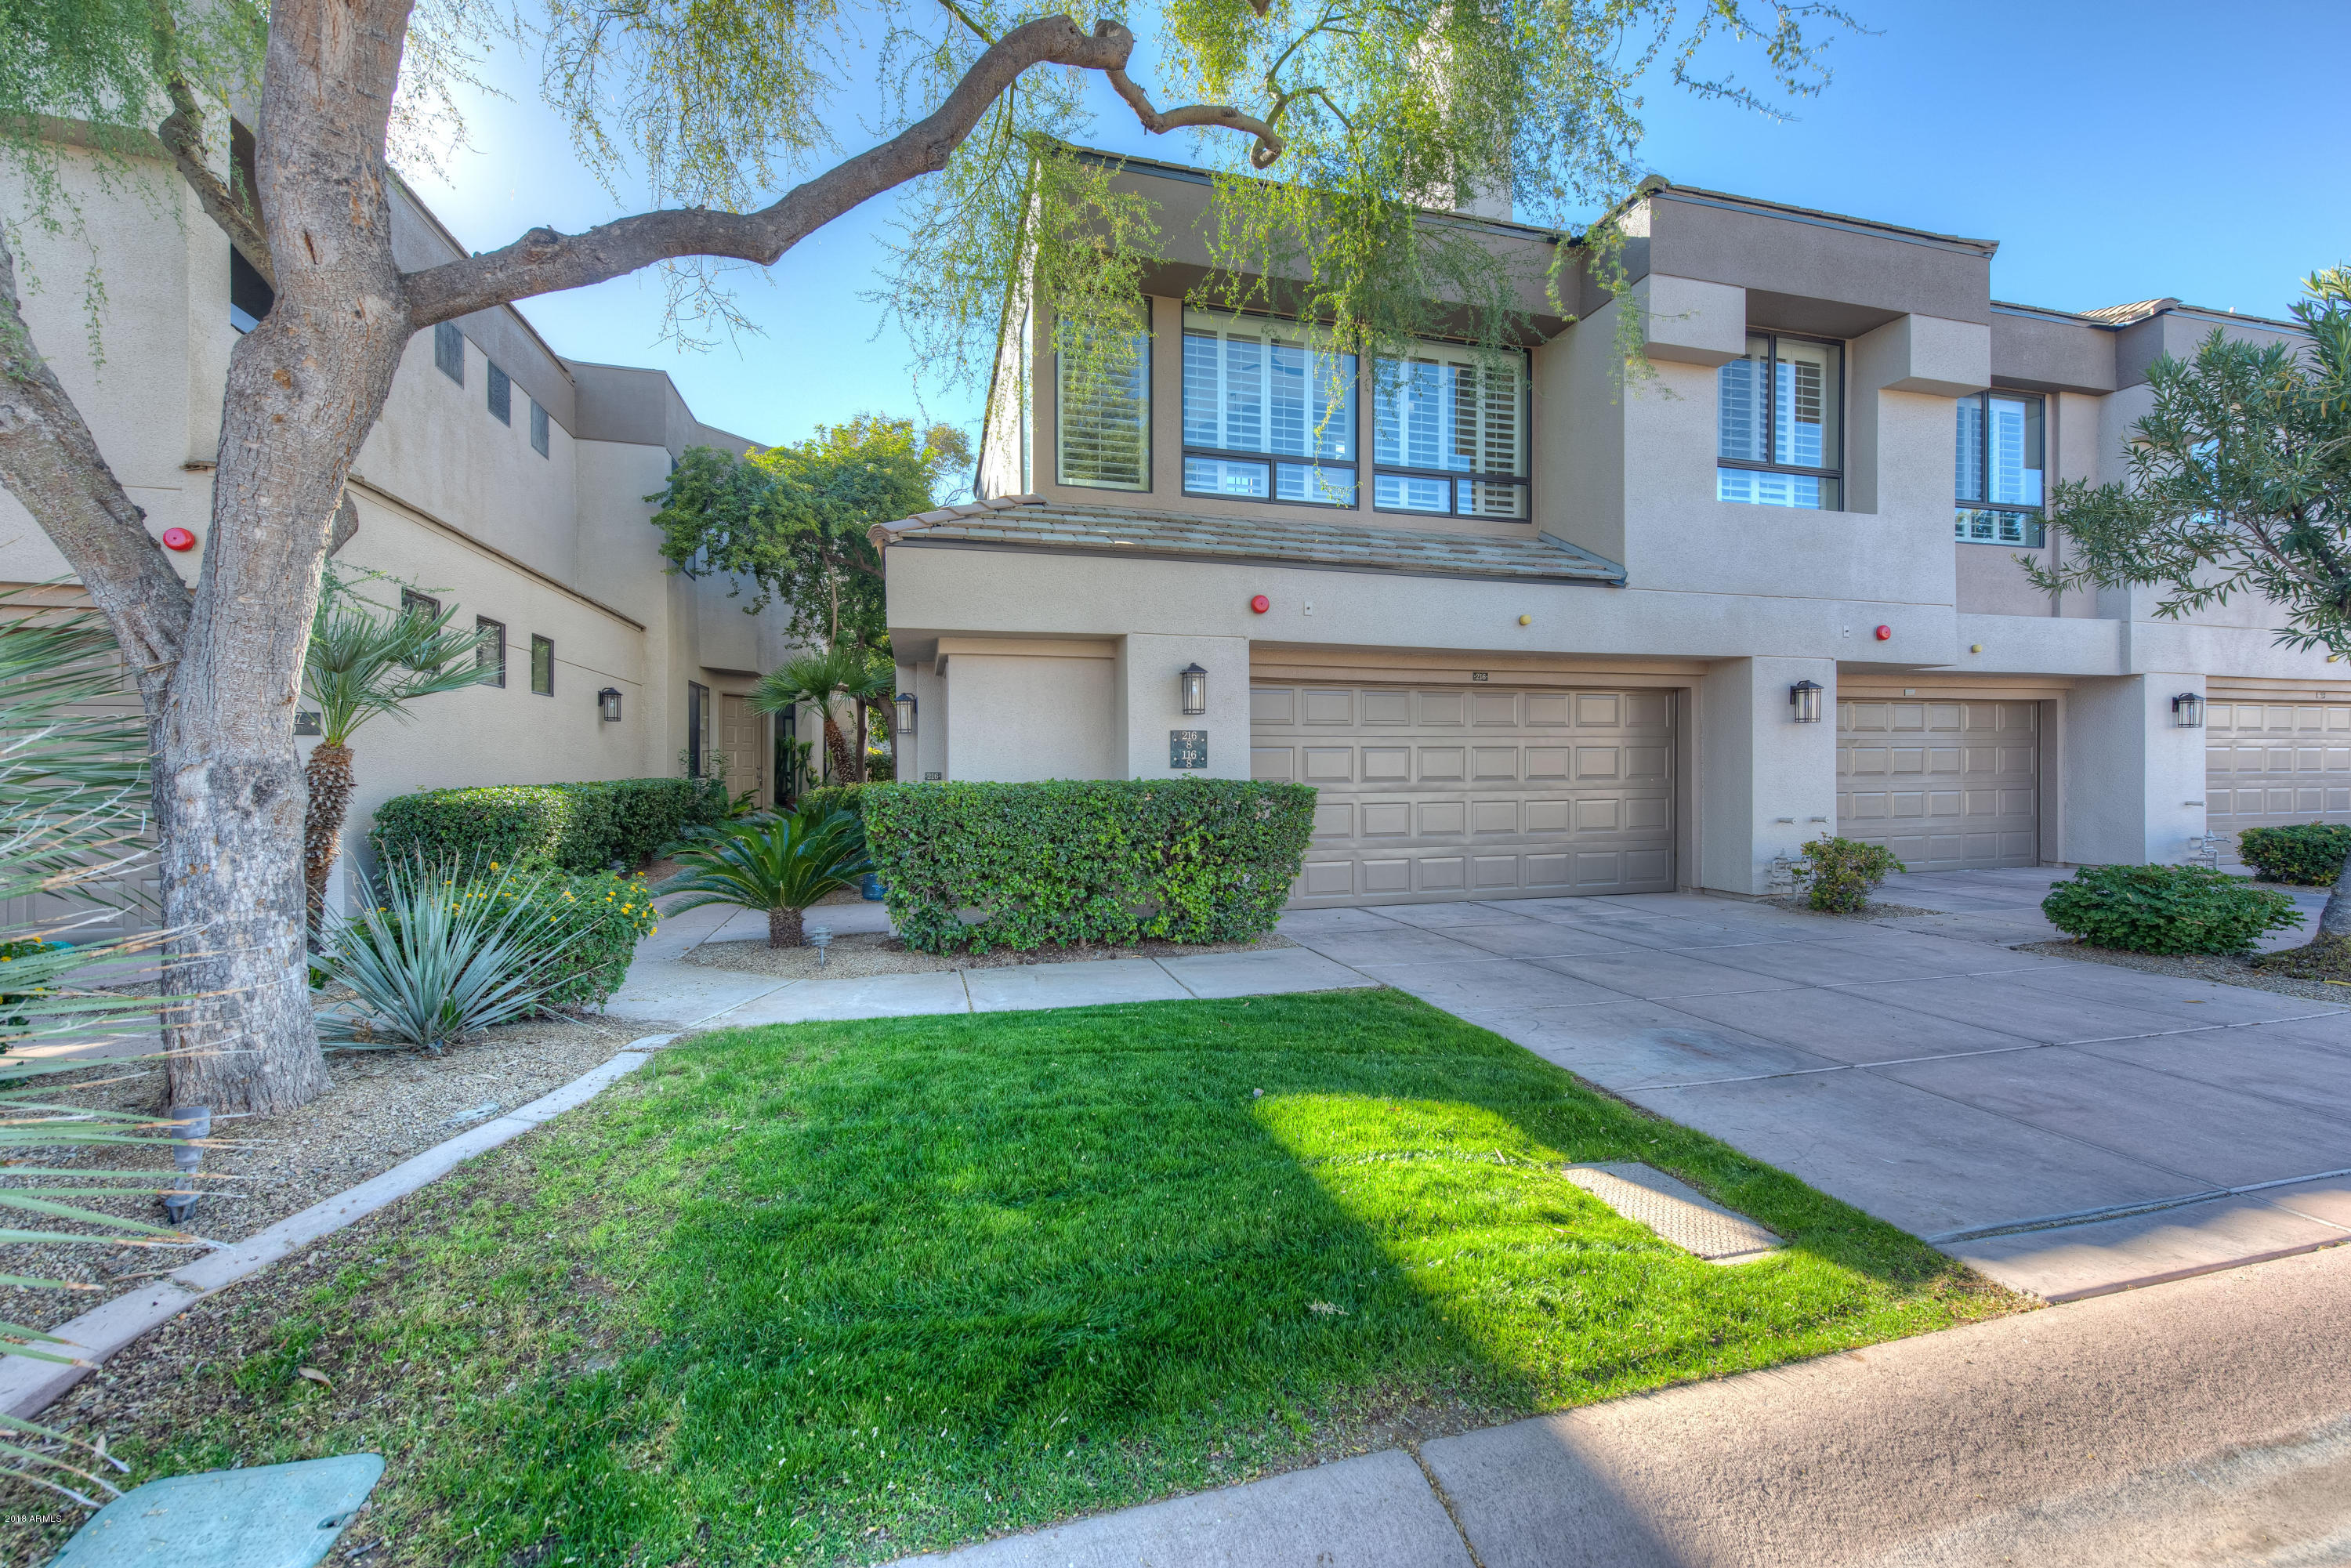 Photo of 7400 E GAINEY CLUB Drive #216, Scottsdale, AZ 85258